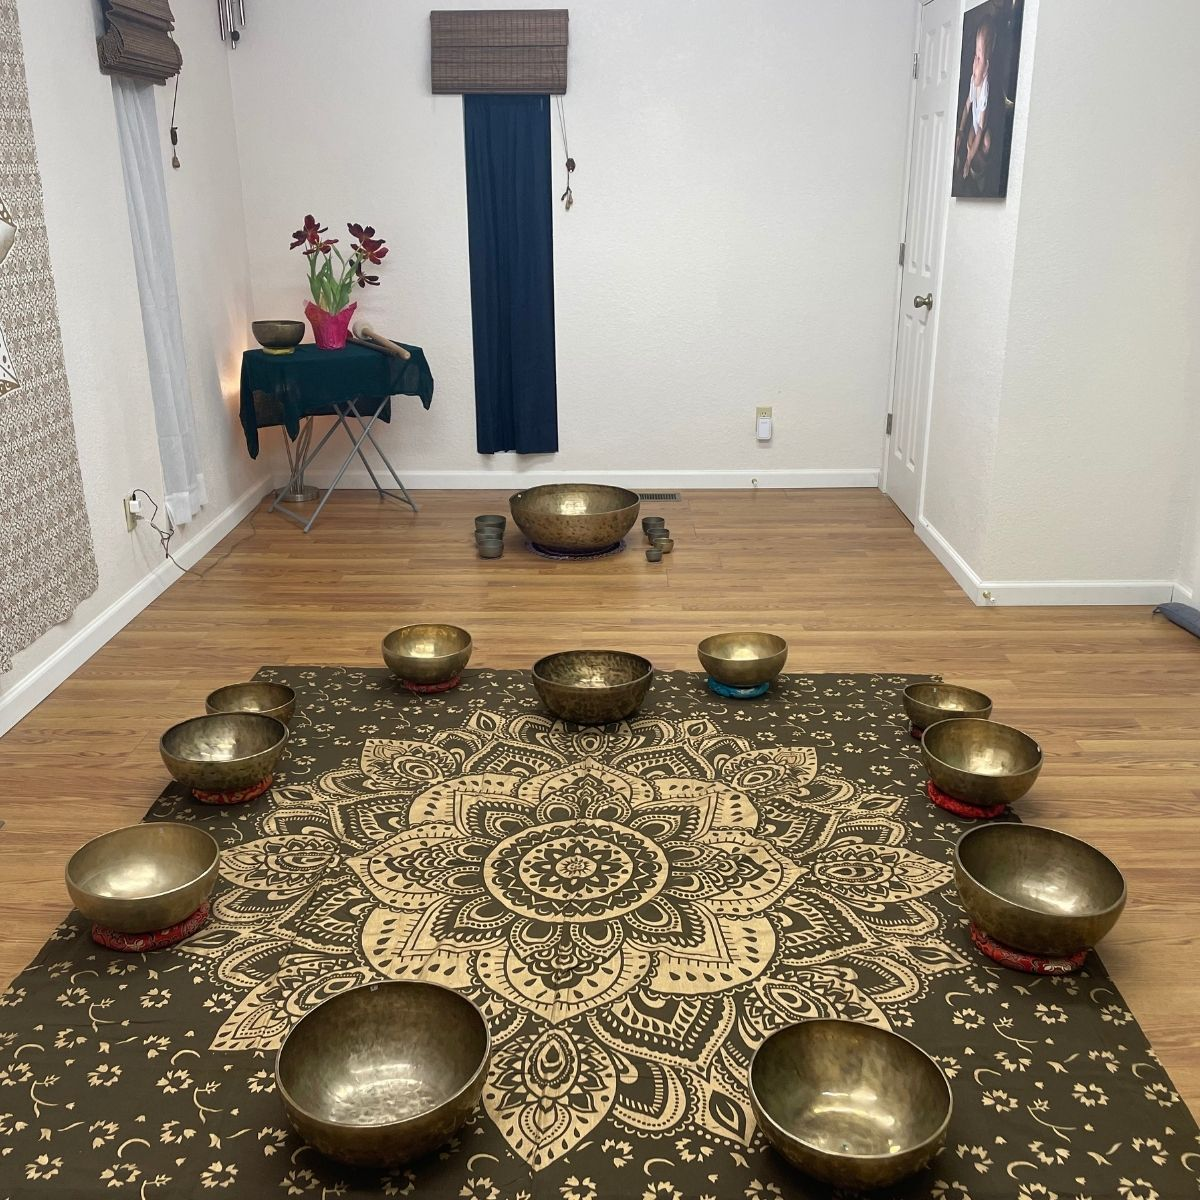 Singing bowls arranged on a heart laying on a brown mandala tapestry